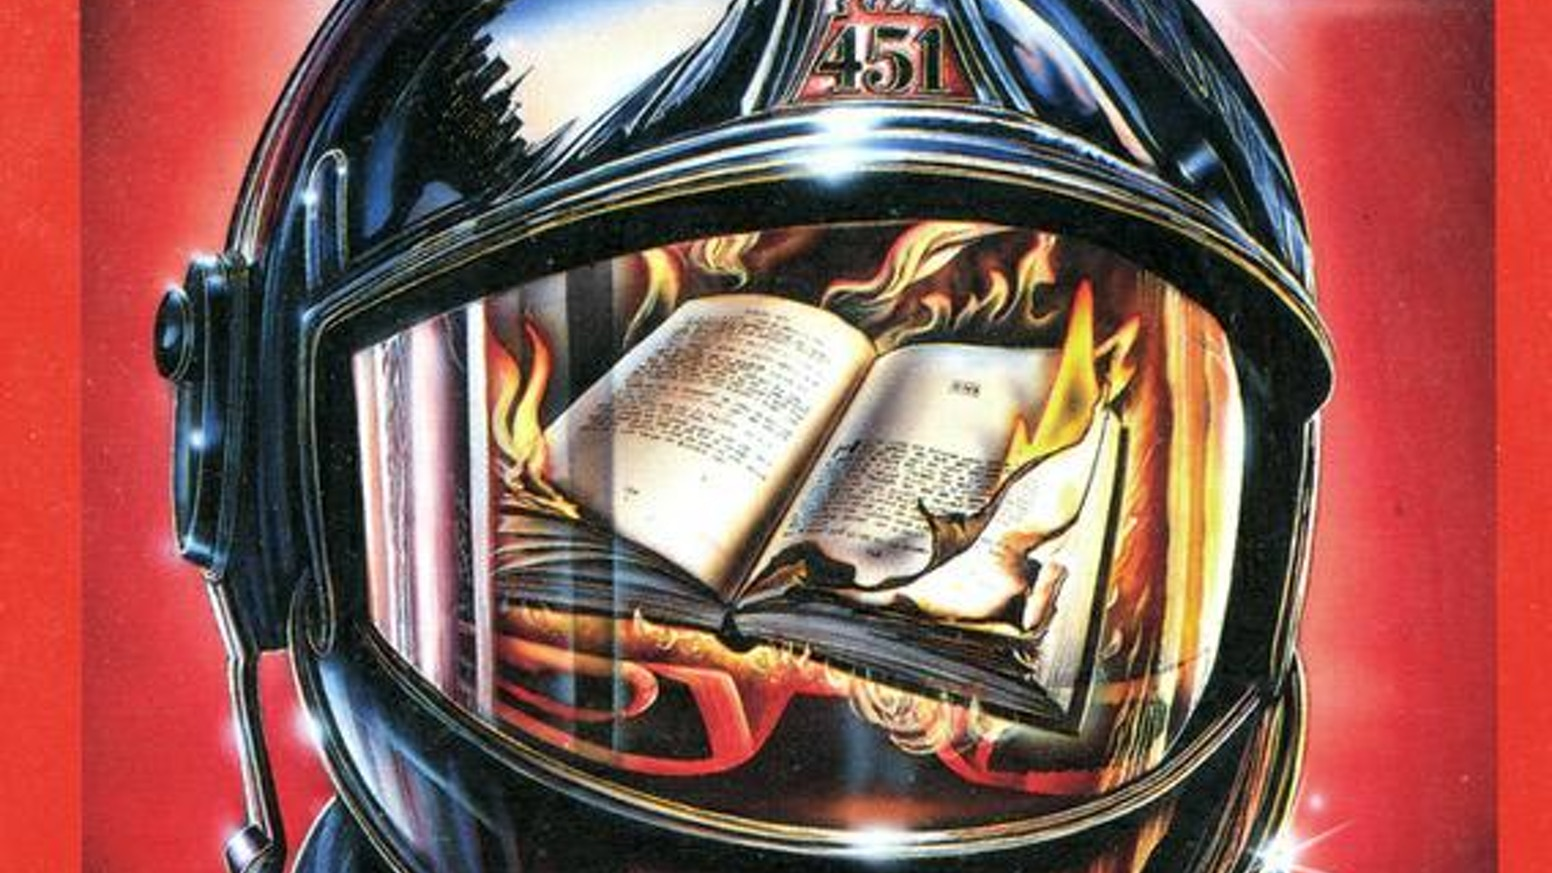 the hidden motives behind the actions of tyrants in fahrenheit 451 by ray bradbury and harrison berg Ray bradbury: short stories study guide contains a biography of ray bradbury, literature essays, quiz questions, major themes, characters, and a full summary and analysis of select short stories.